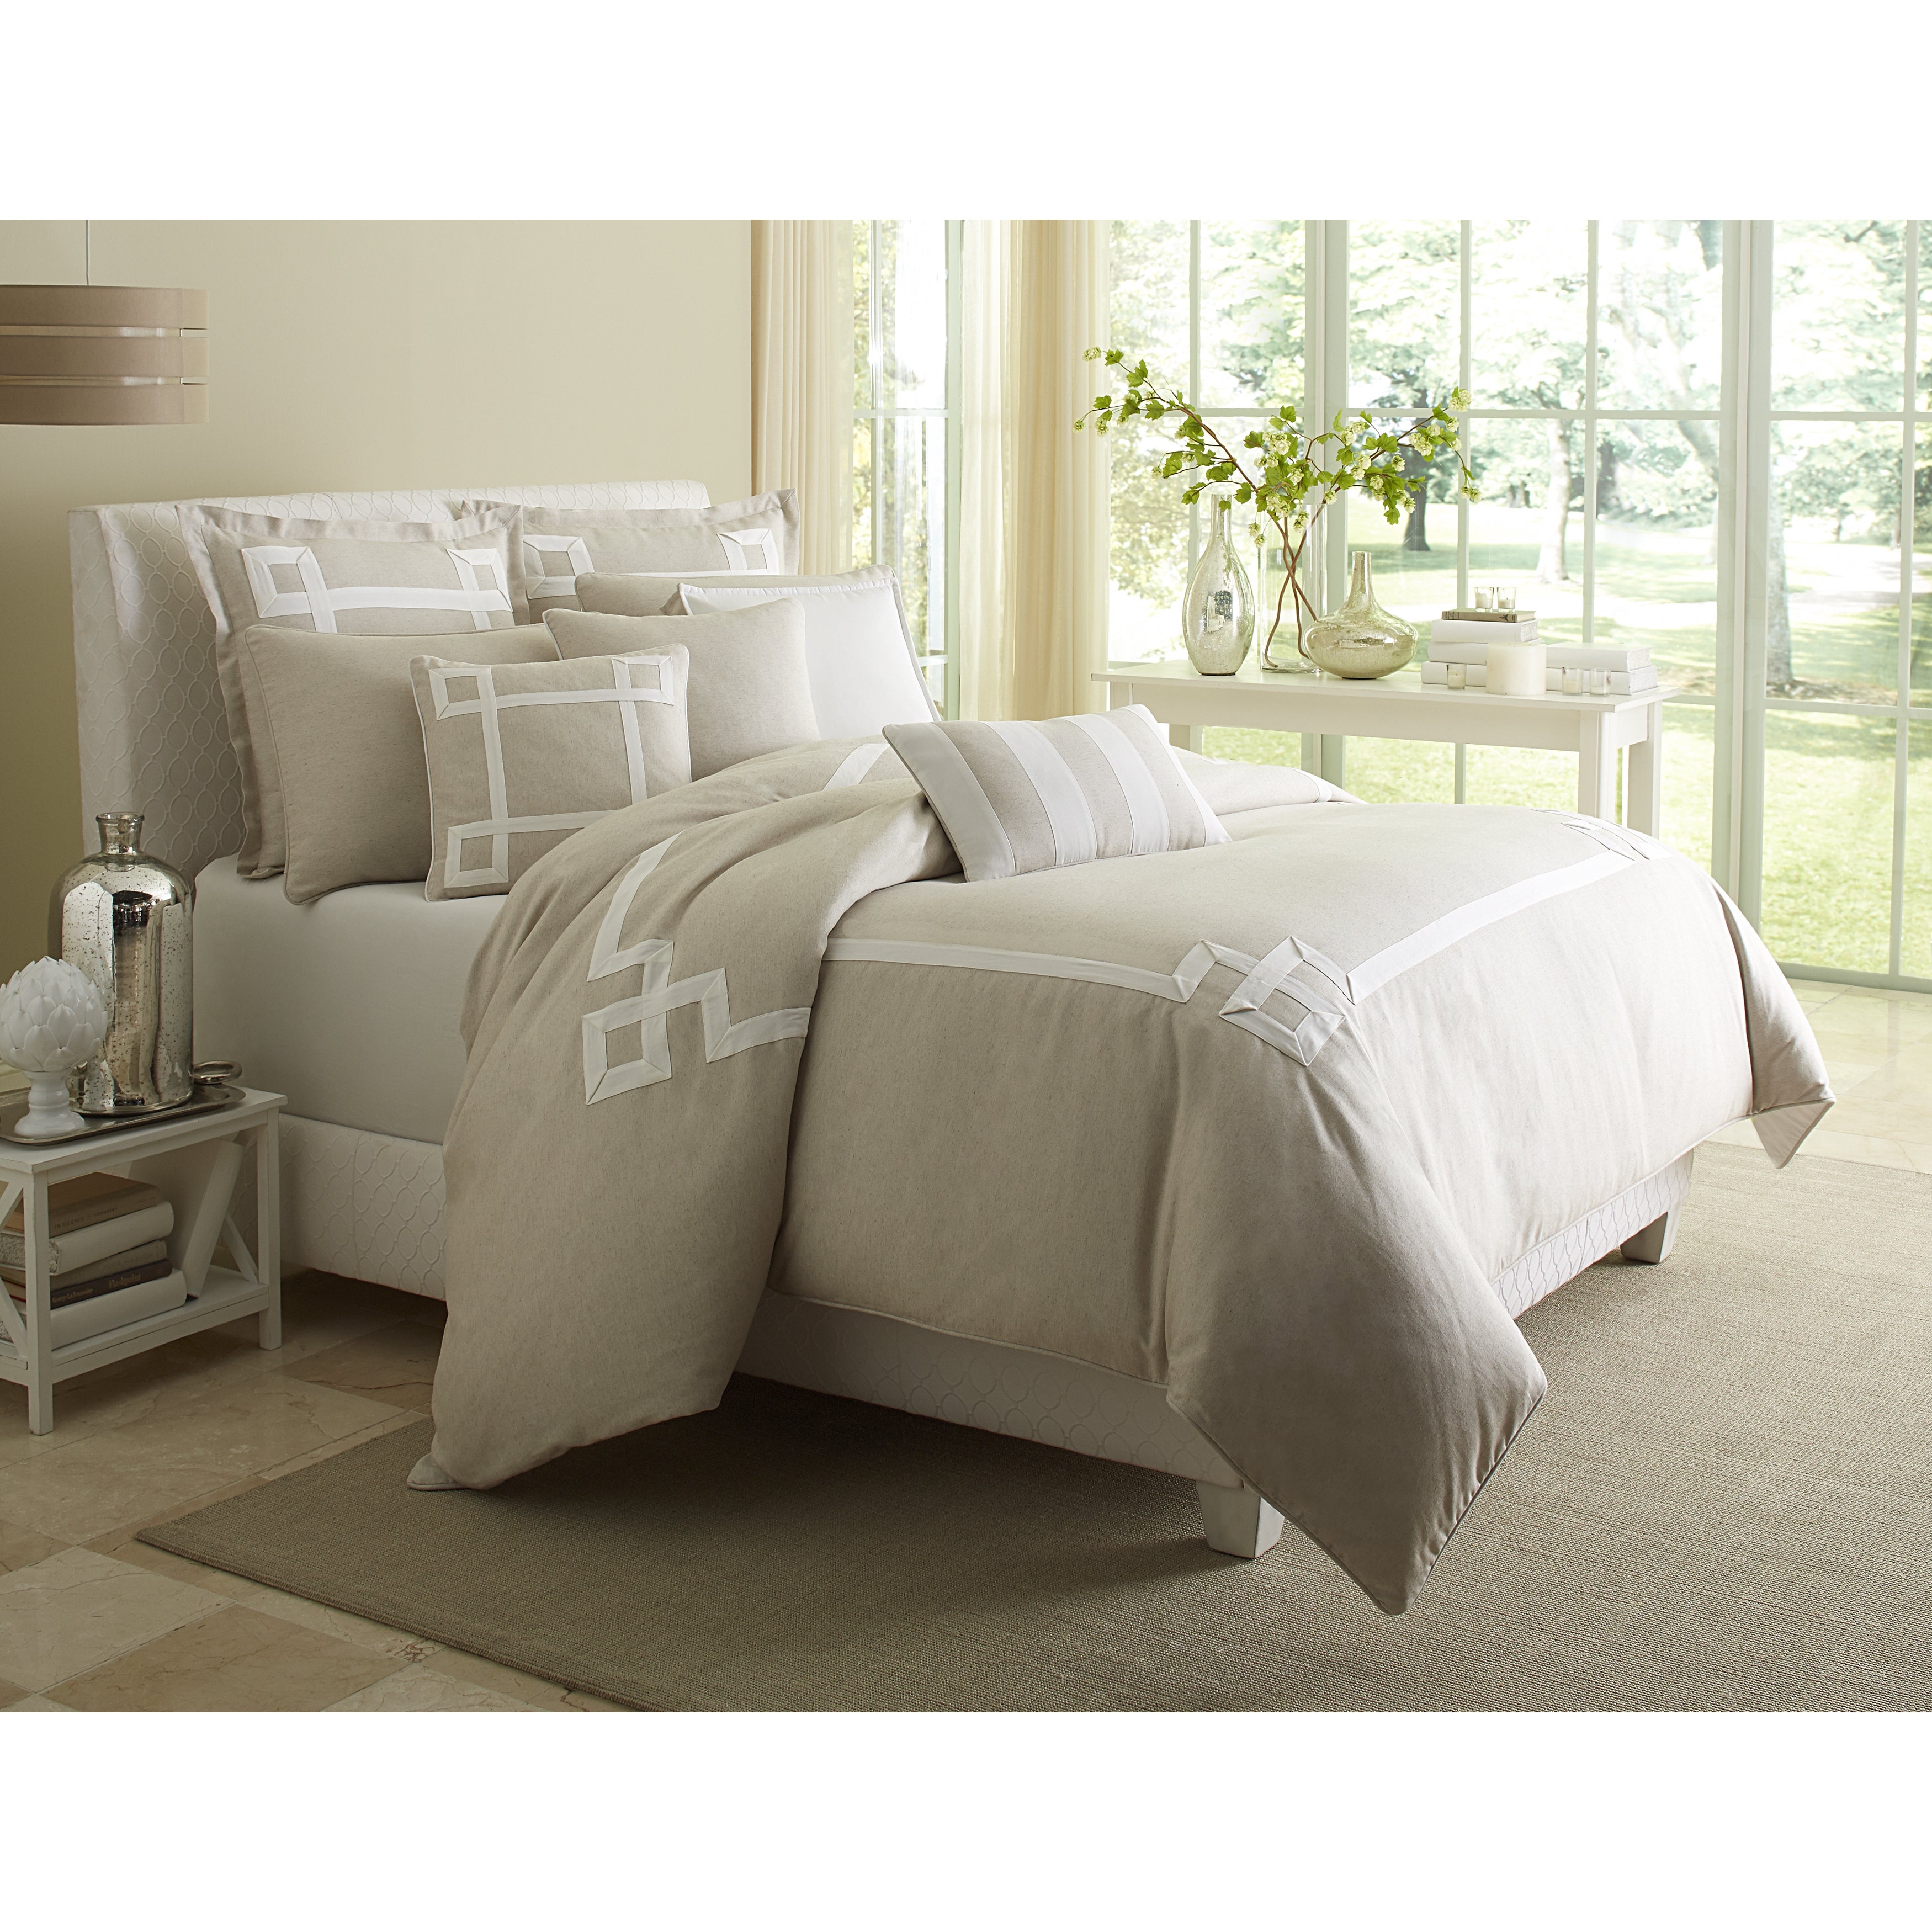 queen amini dining co set sleigh furniture whole bedroom michael sets bed king room bedding premiojer